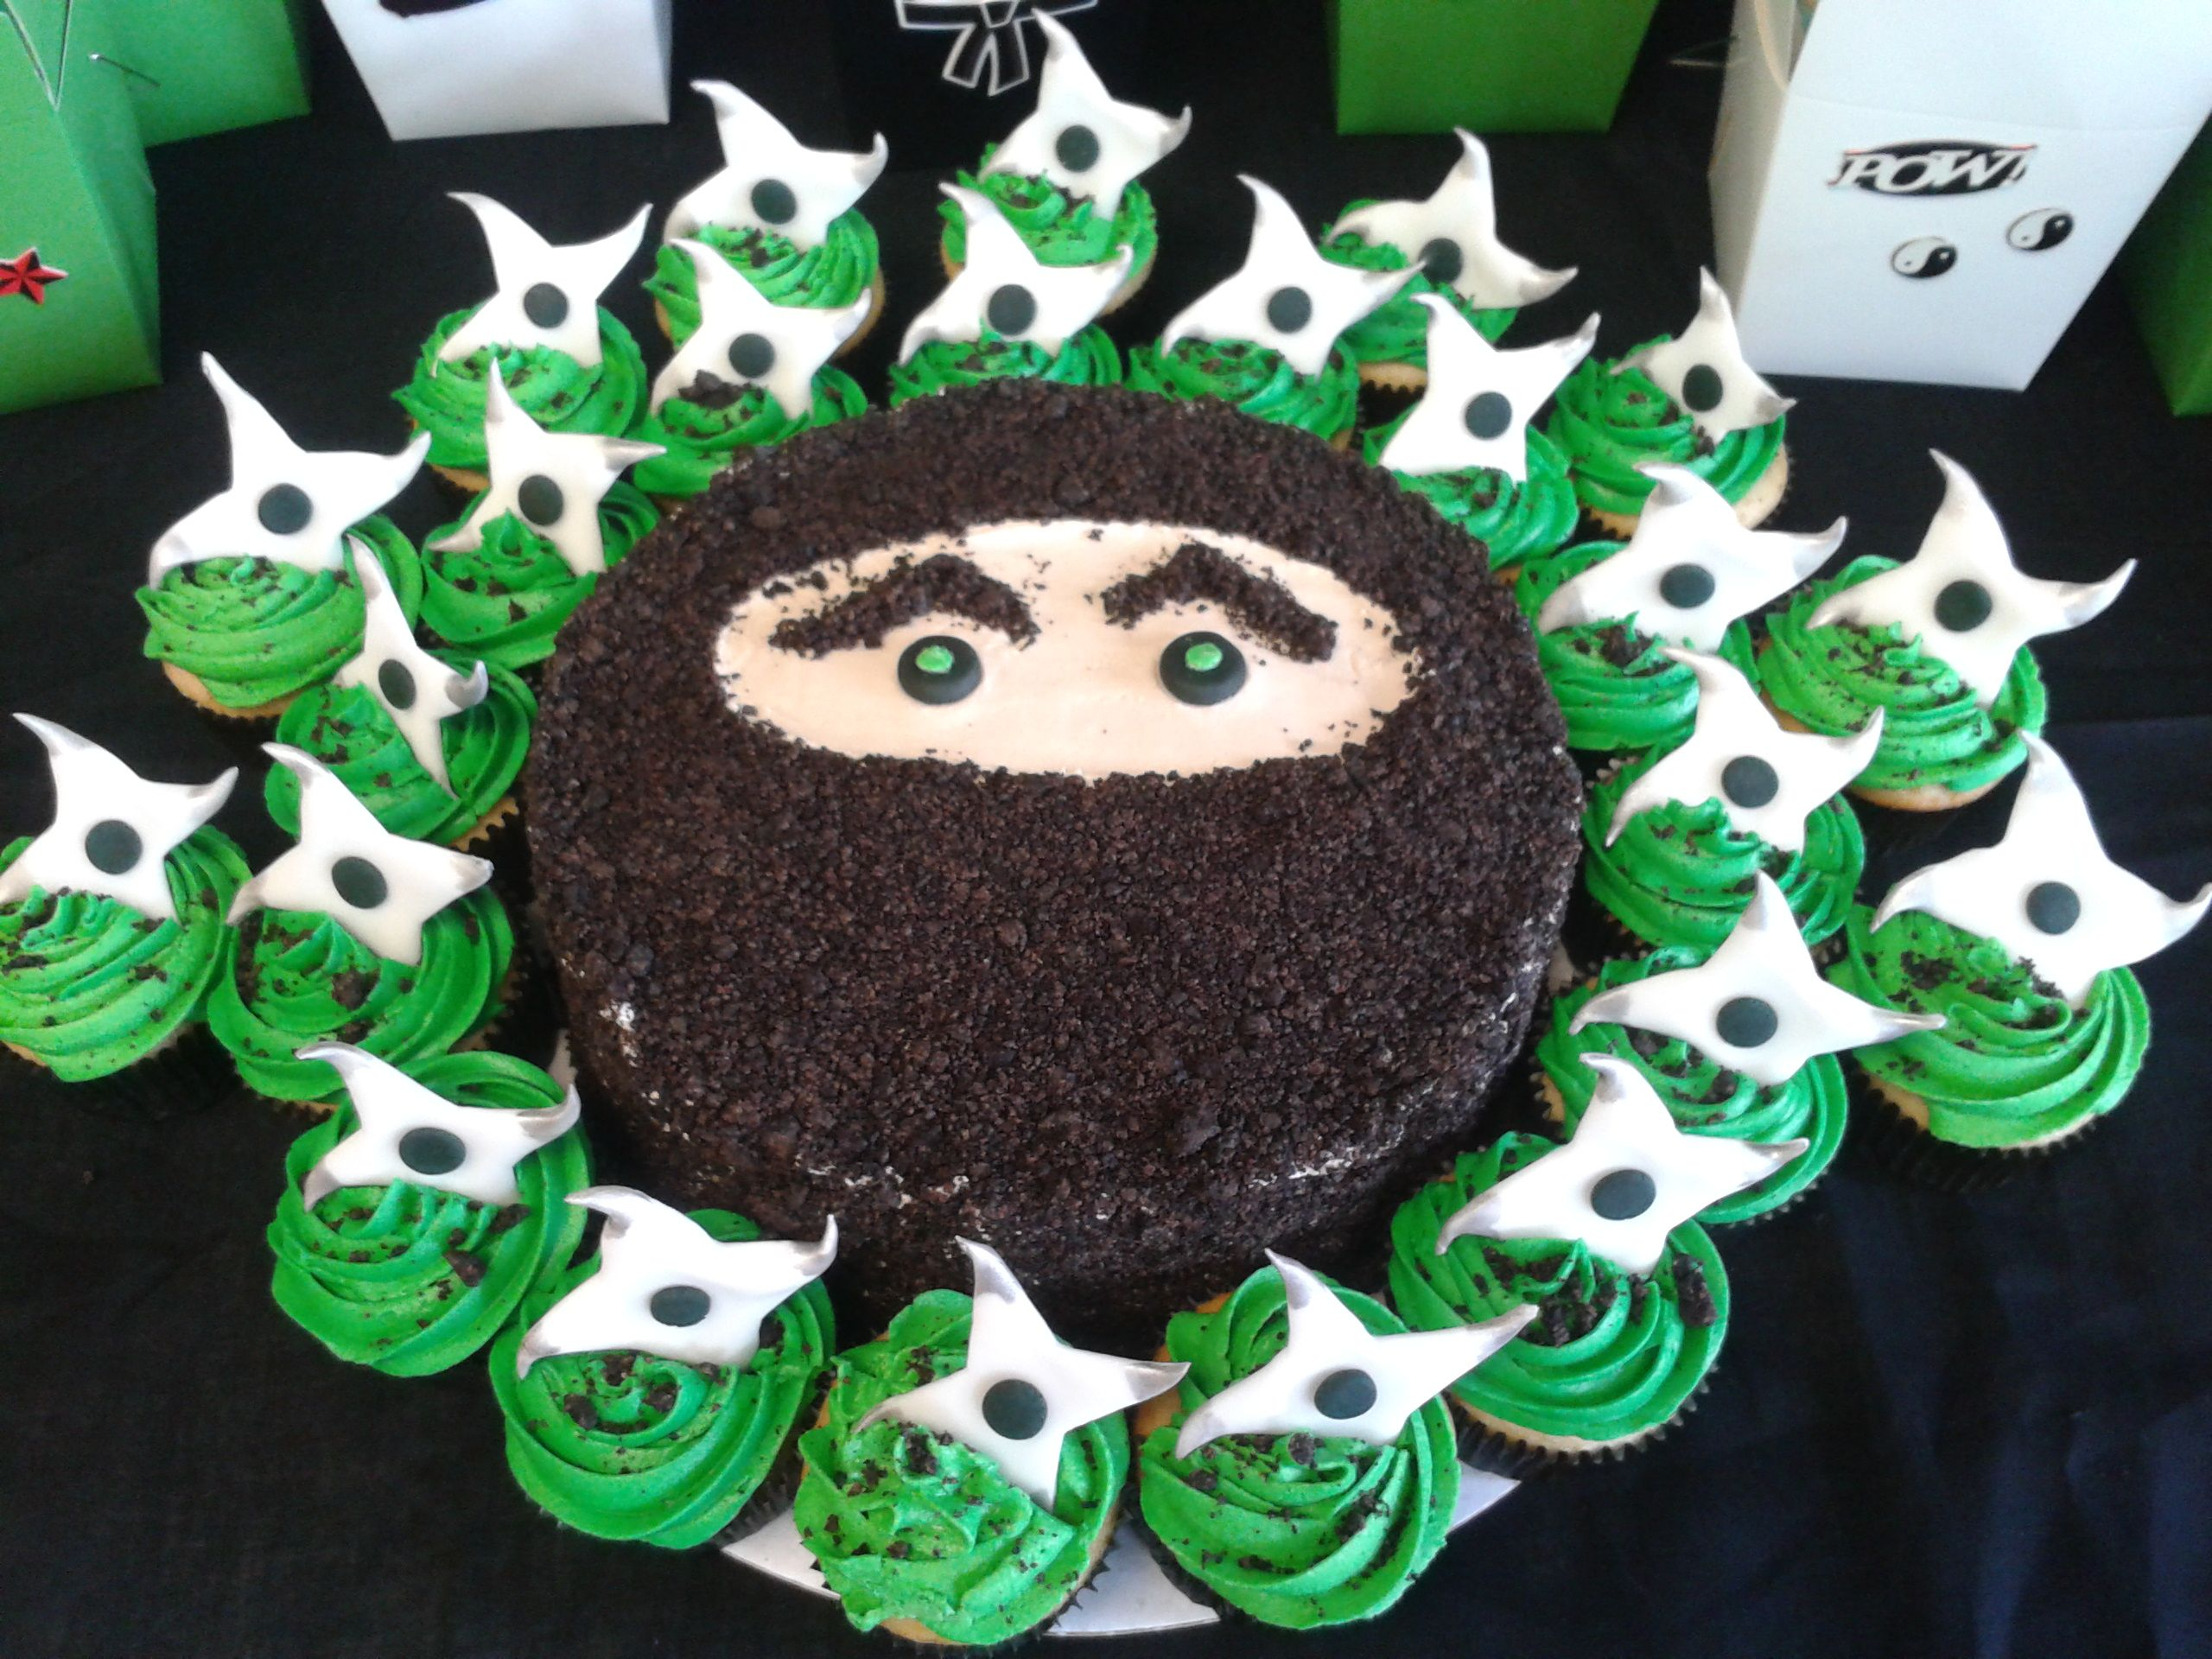 Ninja cake with ninja star cupcakes! Ninja made with crushed oreos